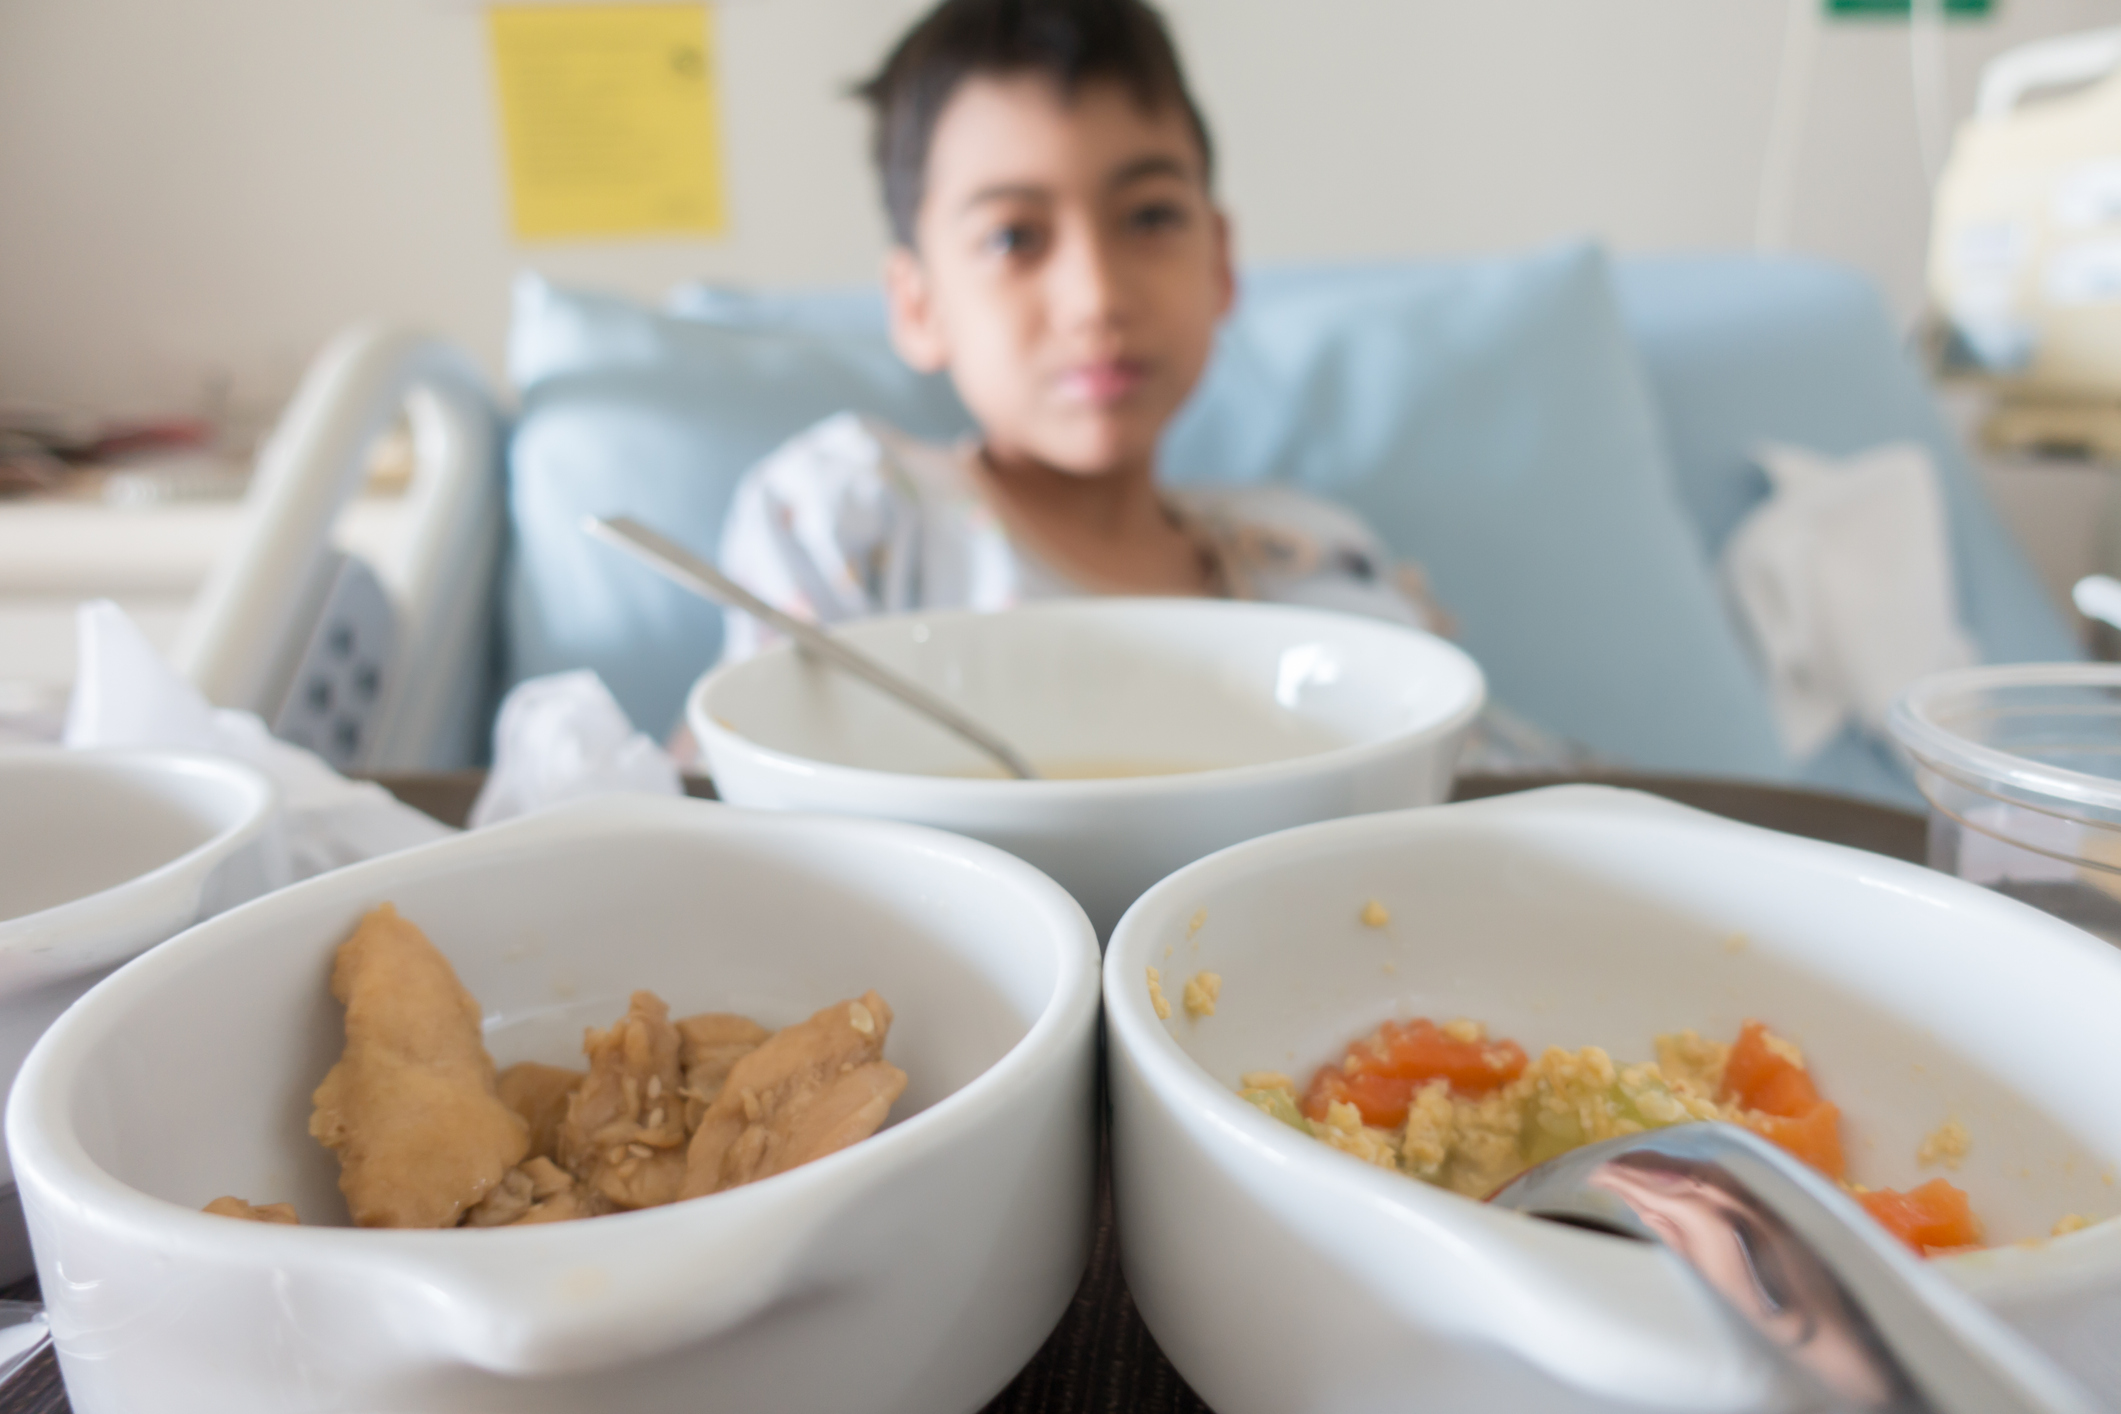 Young boy in hospital bed with tray of food in the foreground